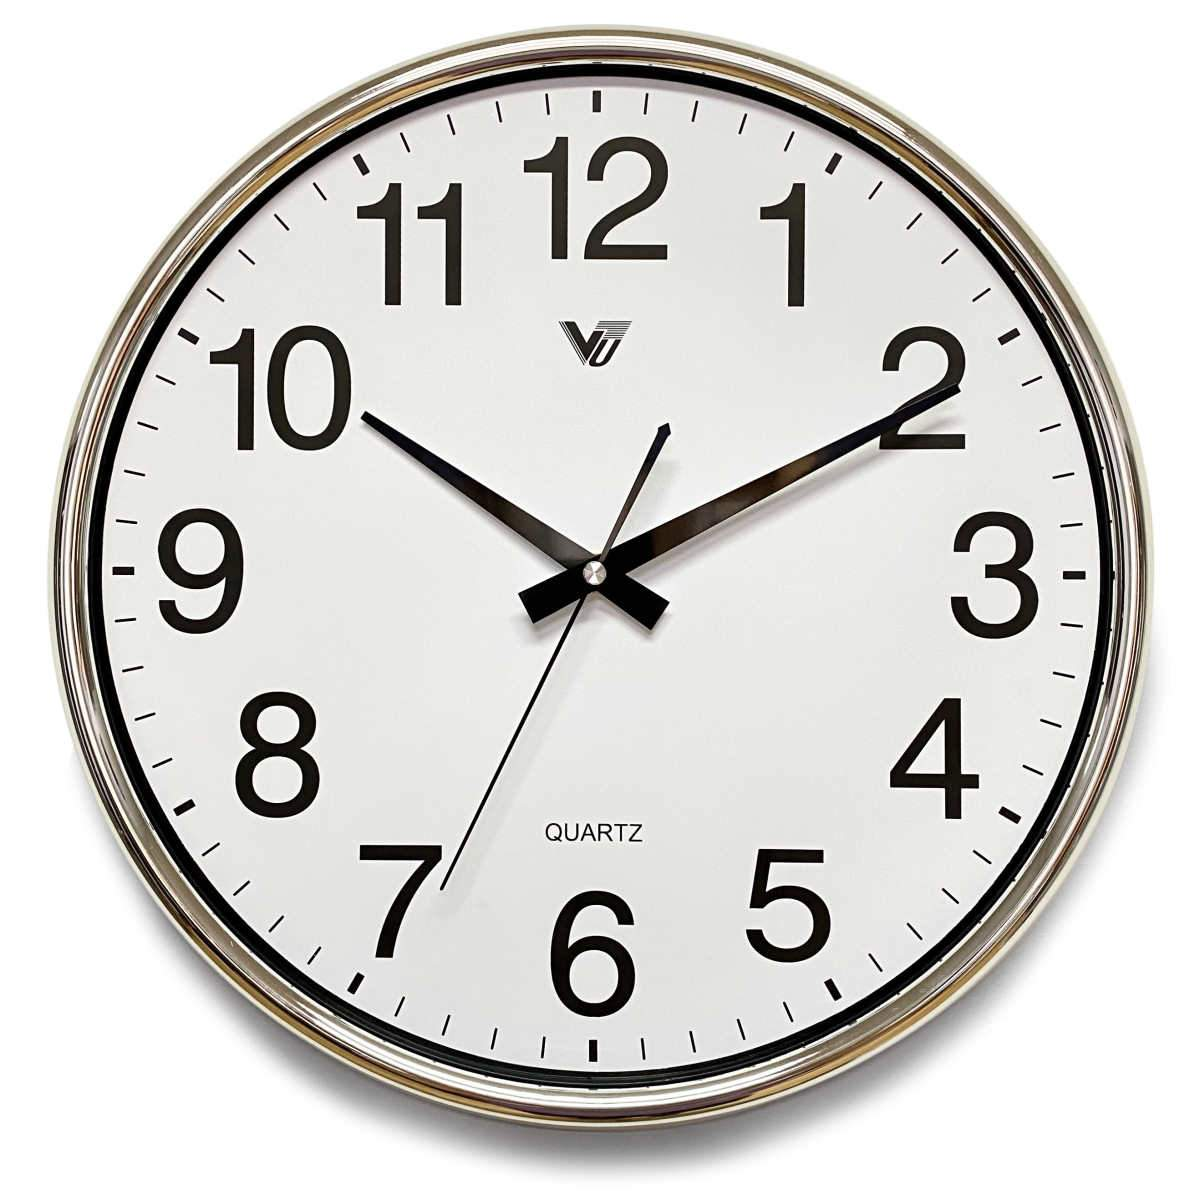 Victory Koen Domed Face Wall Clock Silver 38cm CCJ-2515S 1